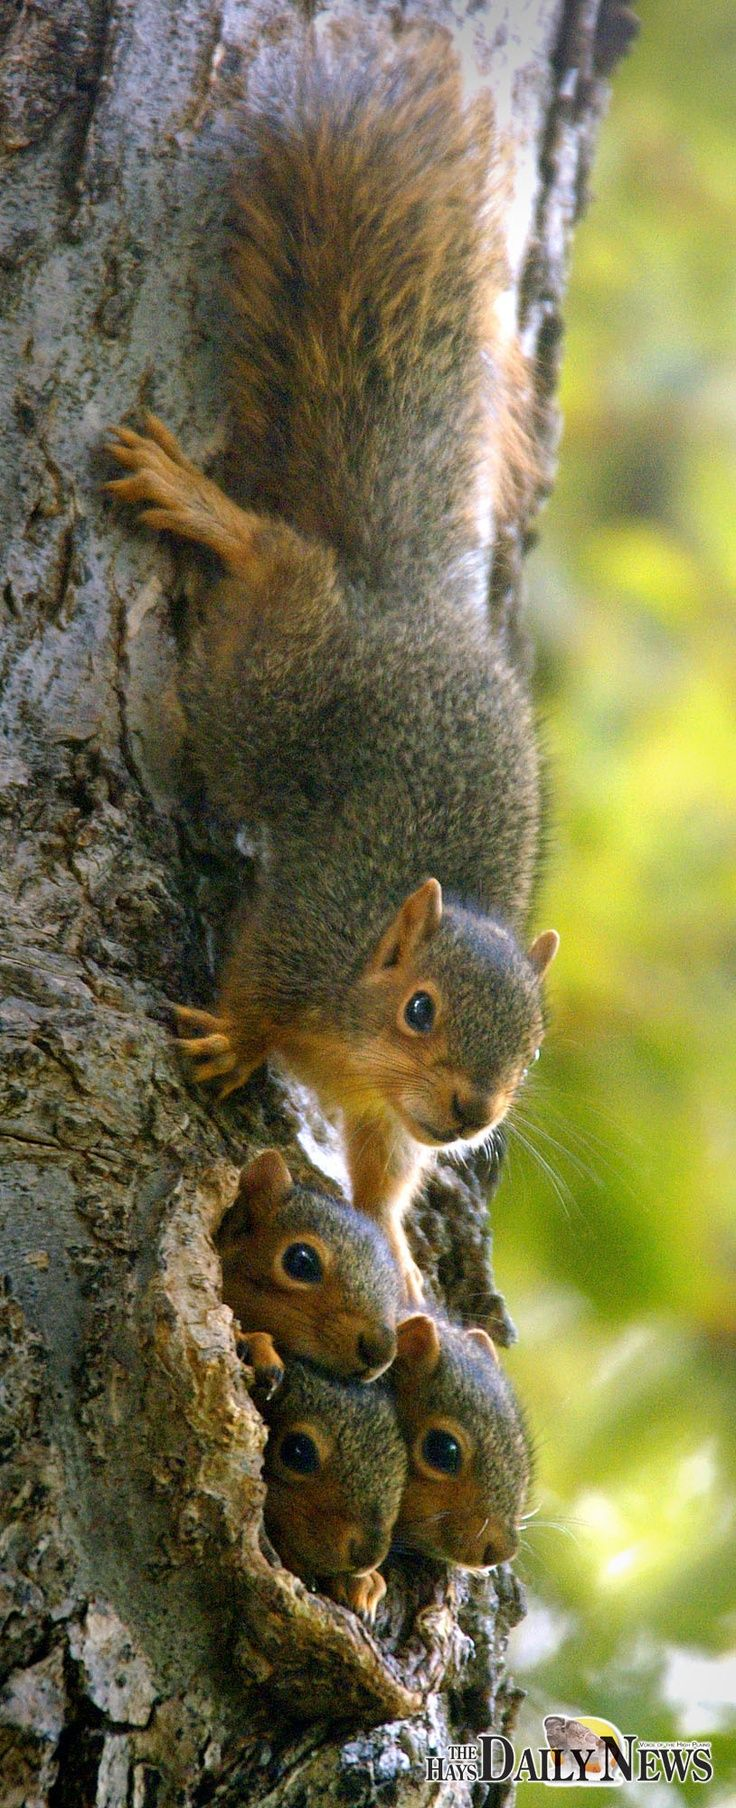 Squirrel Family / Cute Squirrels - / - - Bookmark Your Local 14 day Weather FREE > www.weathertrends360.com/dashboard No Ads or Apps or Hidden Costs